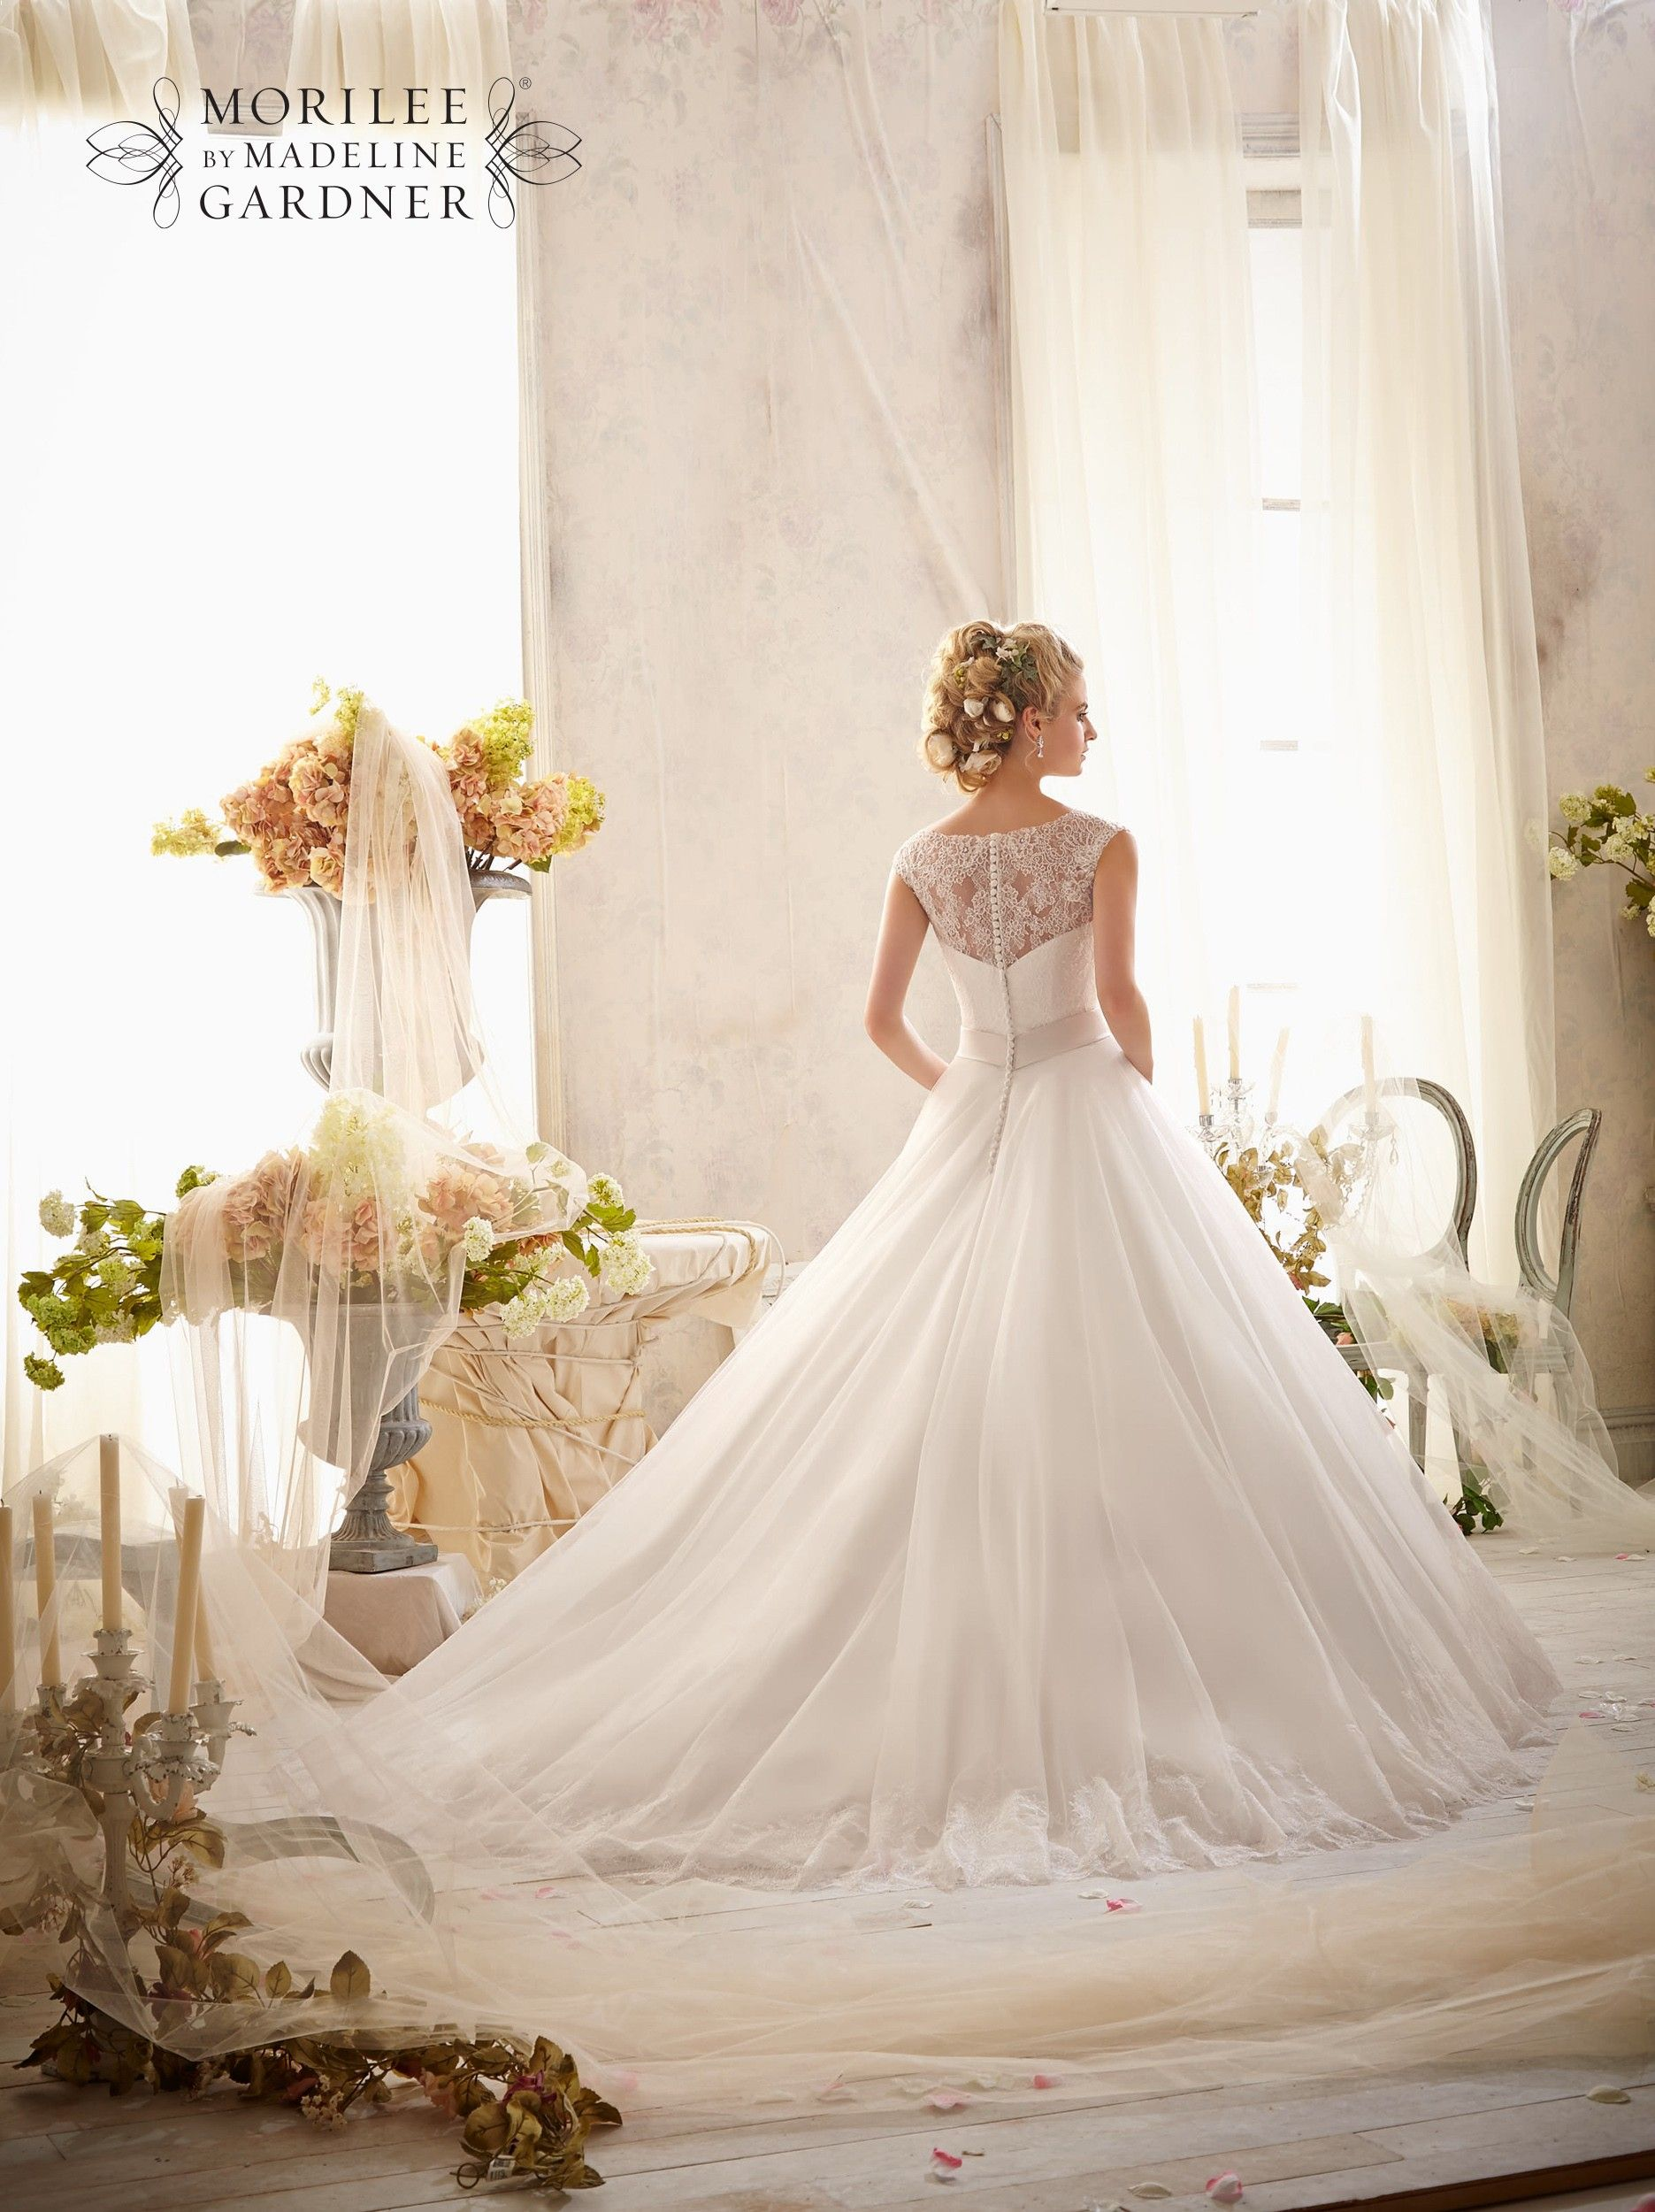 Full ballgown wedding dress with waist band and beading detail